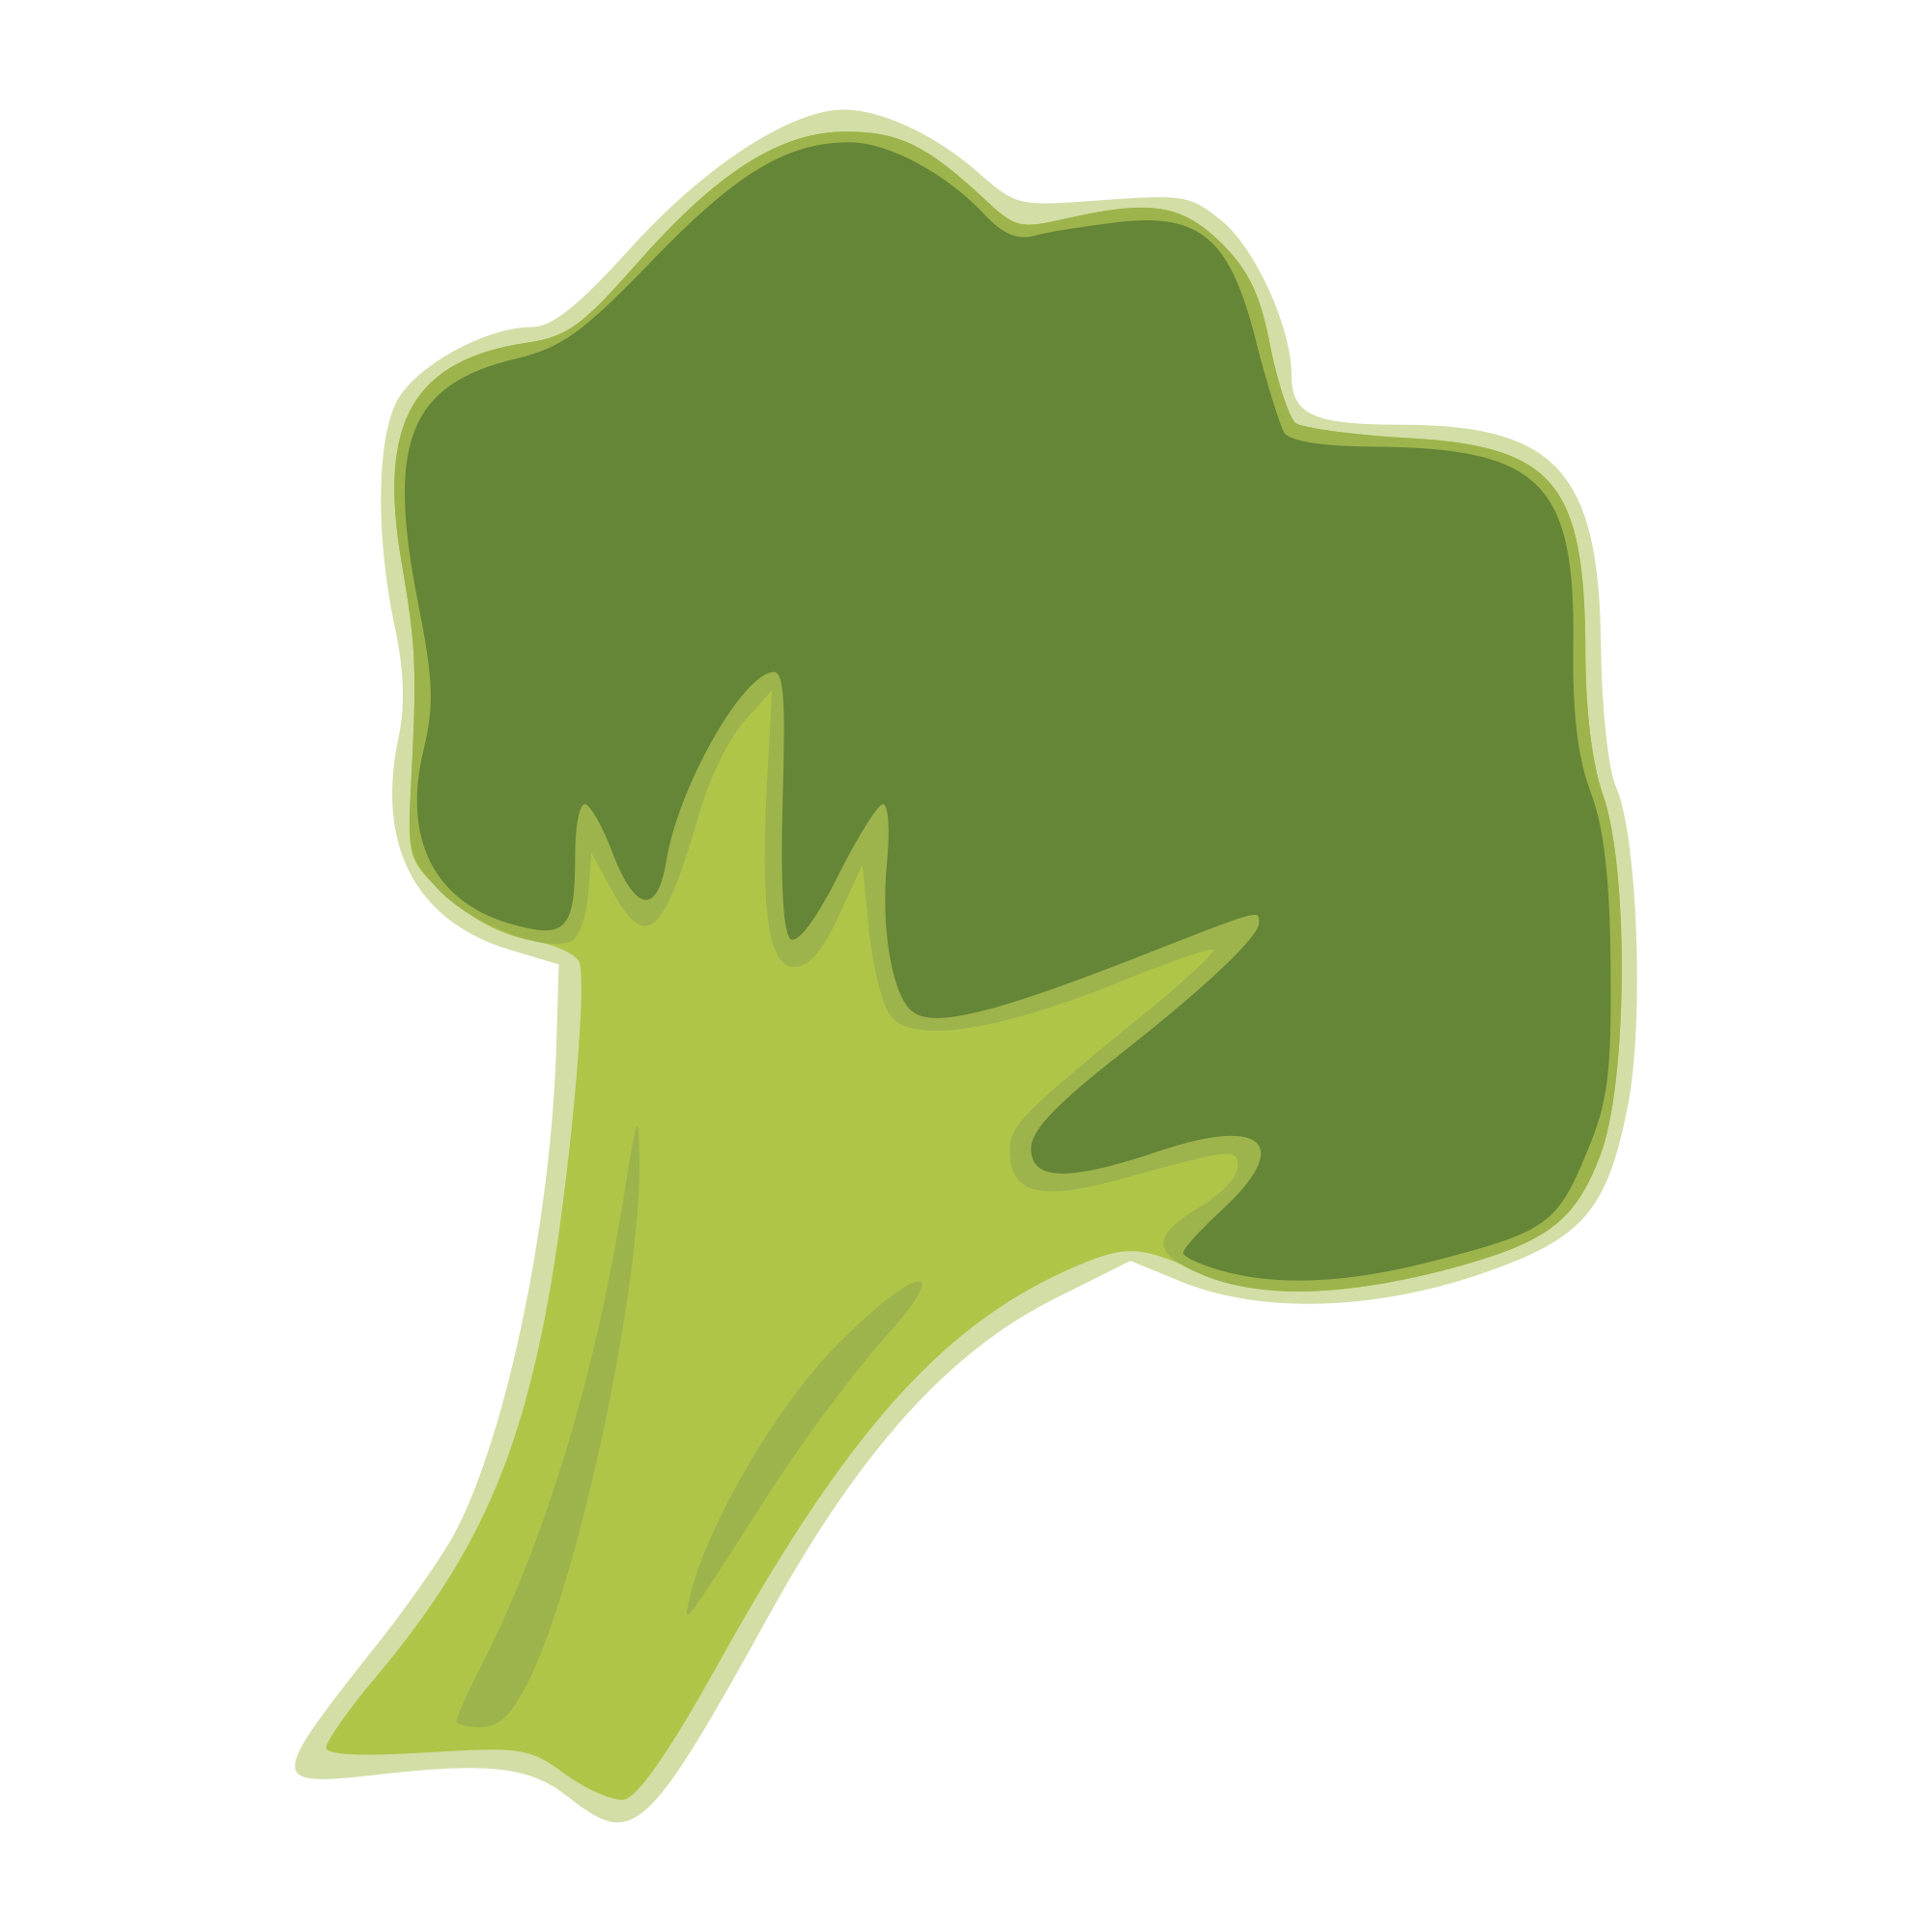 Broccoli clipart svg. File by yamachem wikimedia